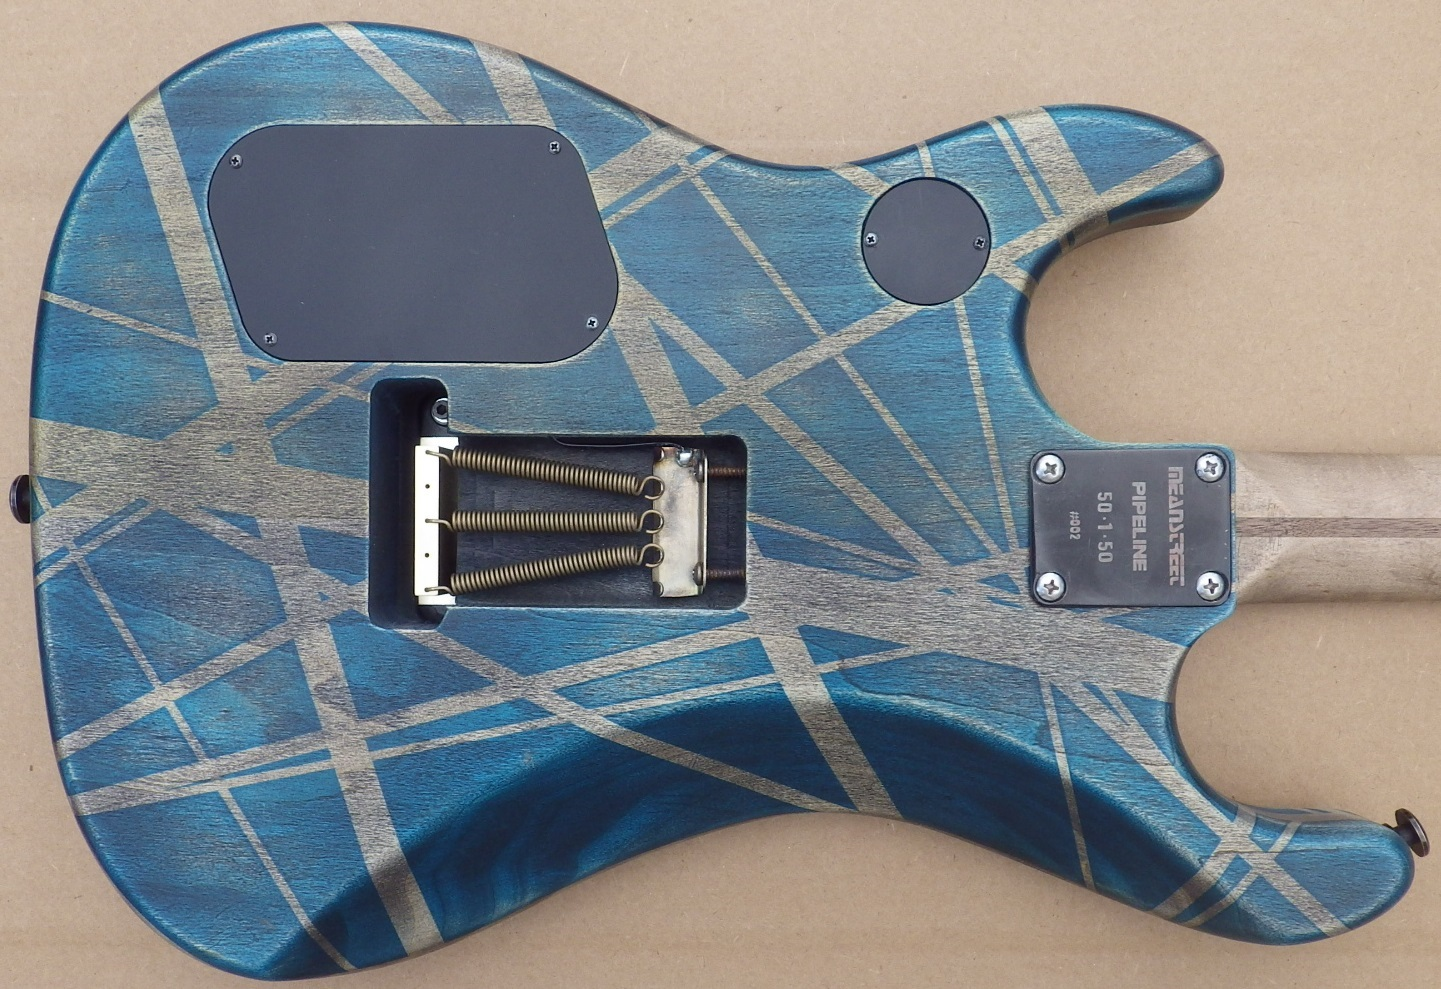 Mean Street Guitars Industrial 50 1 50 Pipeline Blue 002 pic 12.jpg